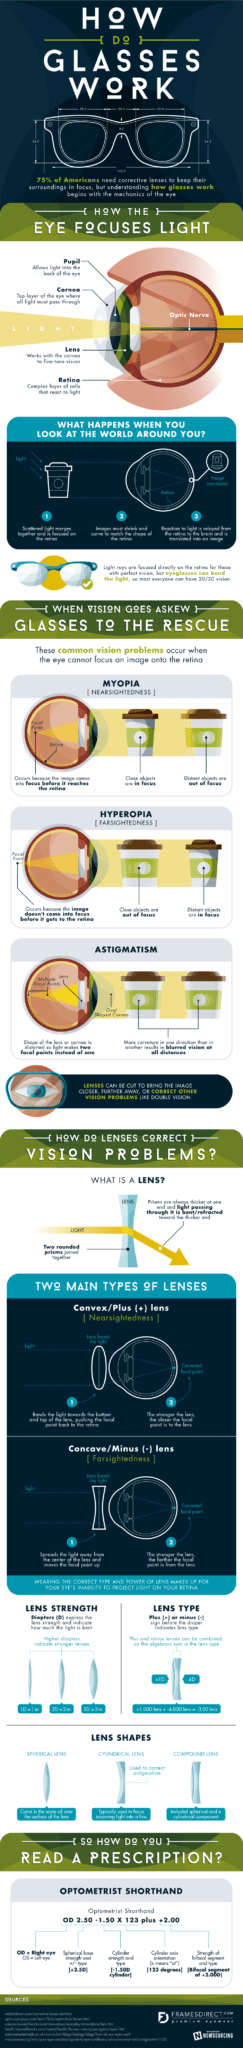 How Glasses Work [Infographic] 1